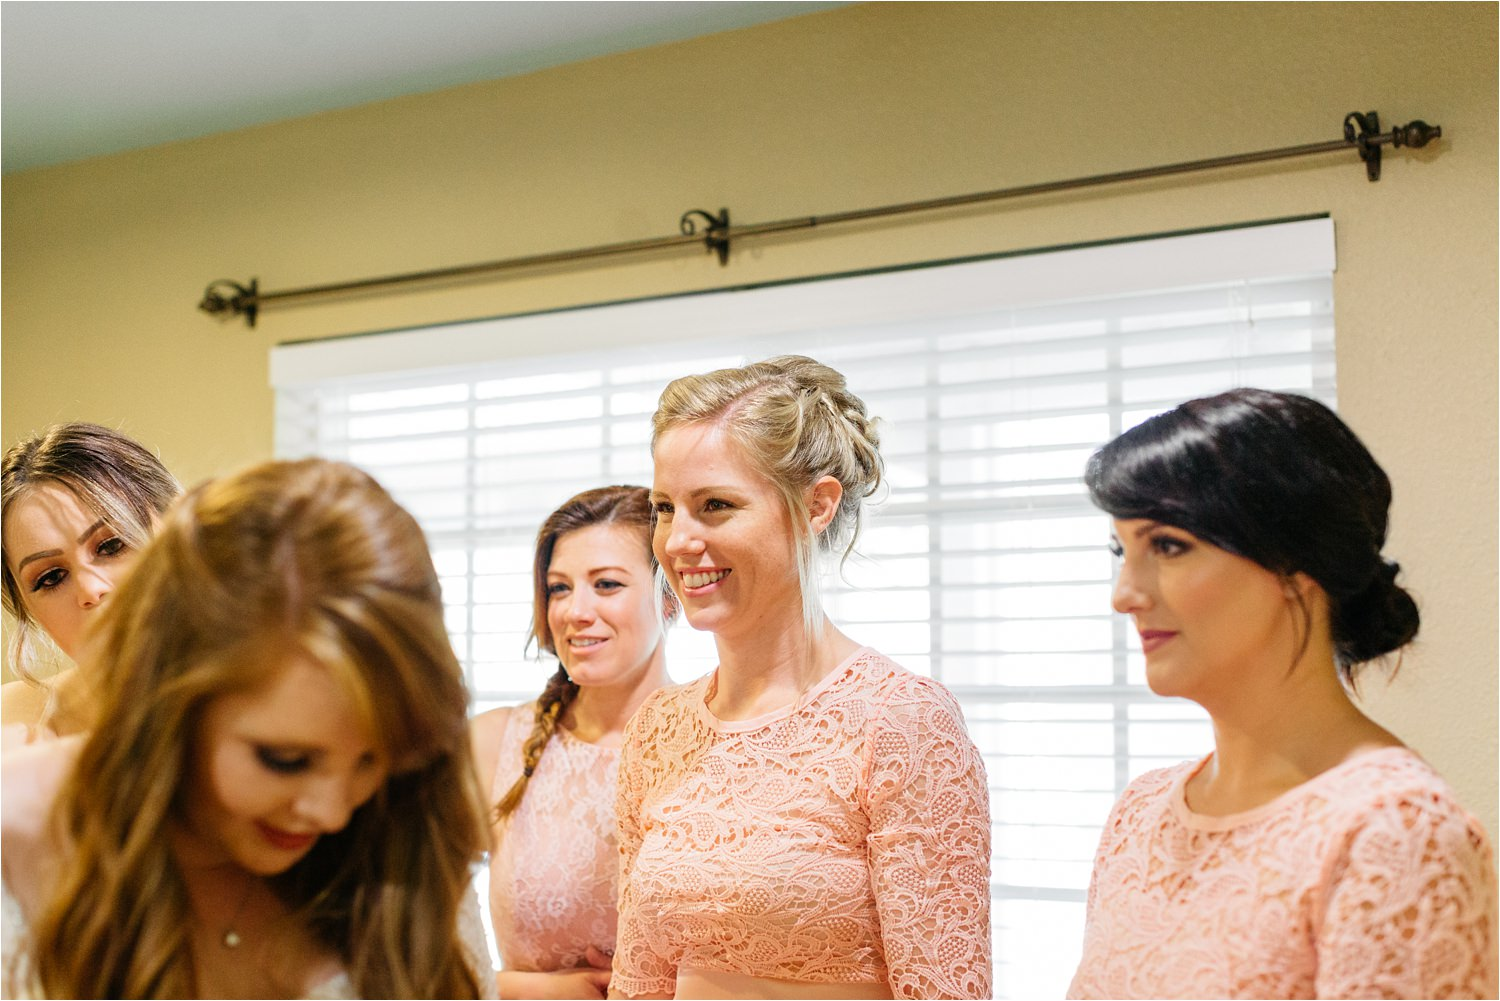 Maid of Honor - Matron of Honor - Brides sisters - https://brittneyhannonphotography.com